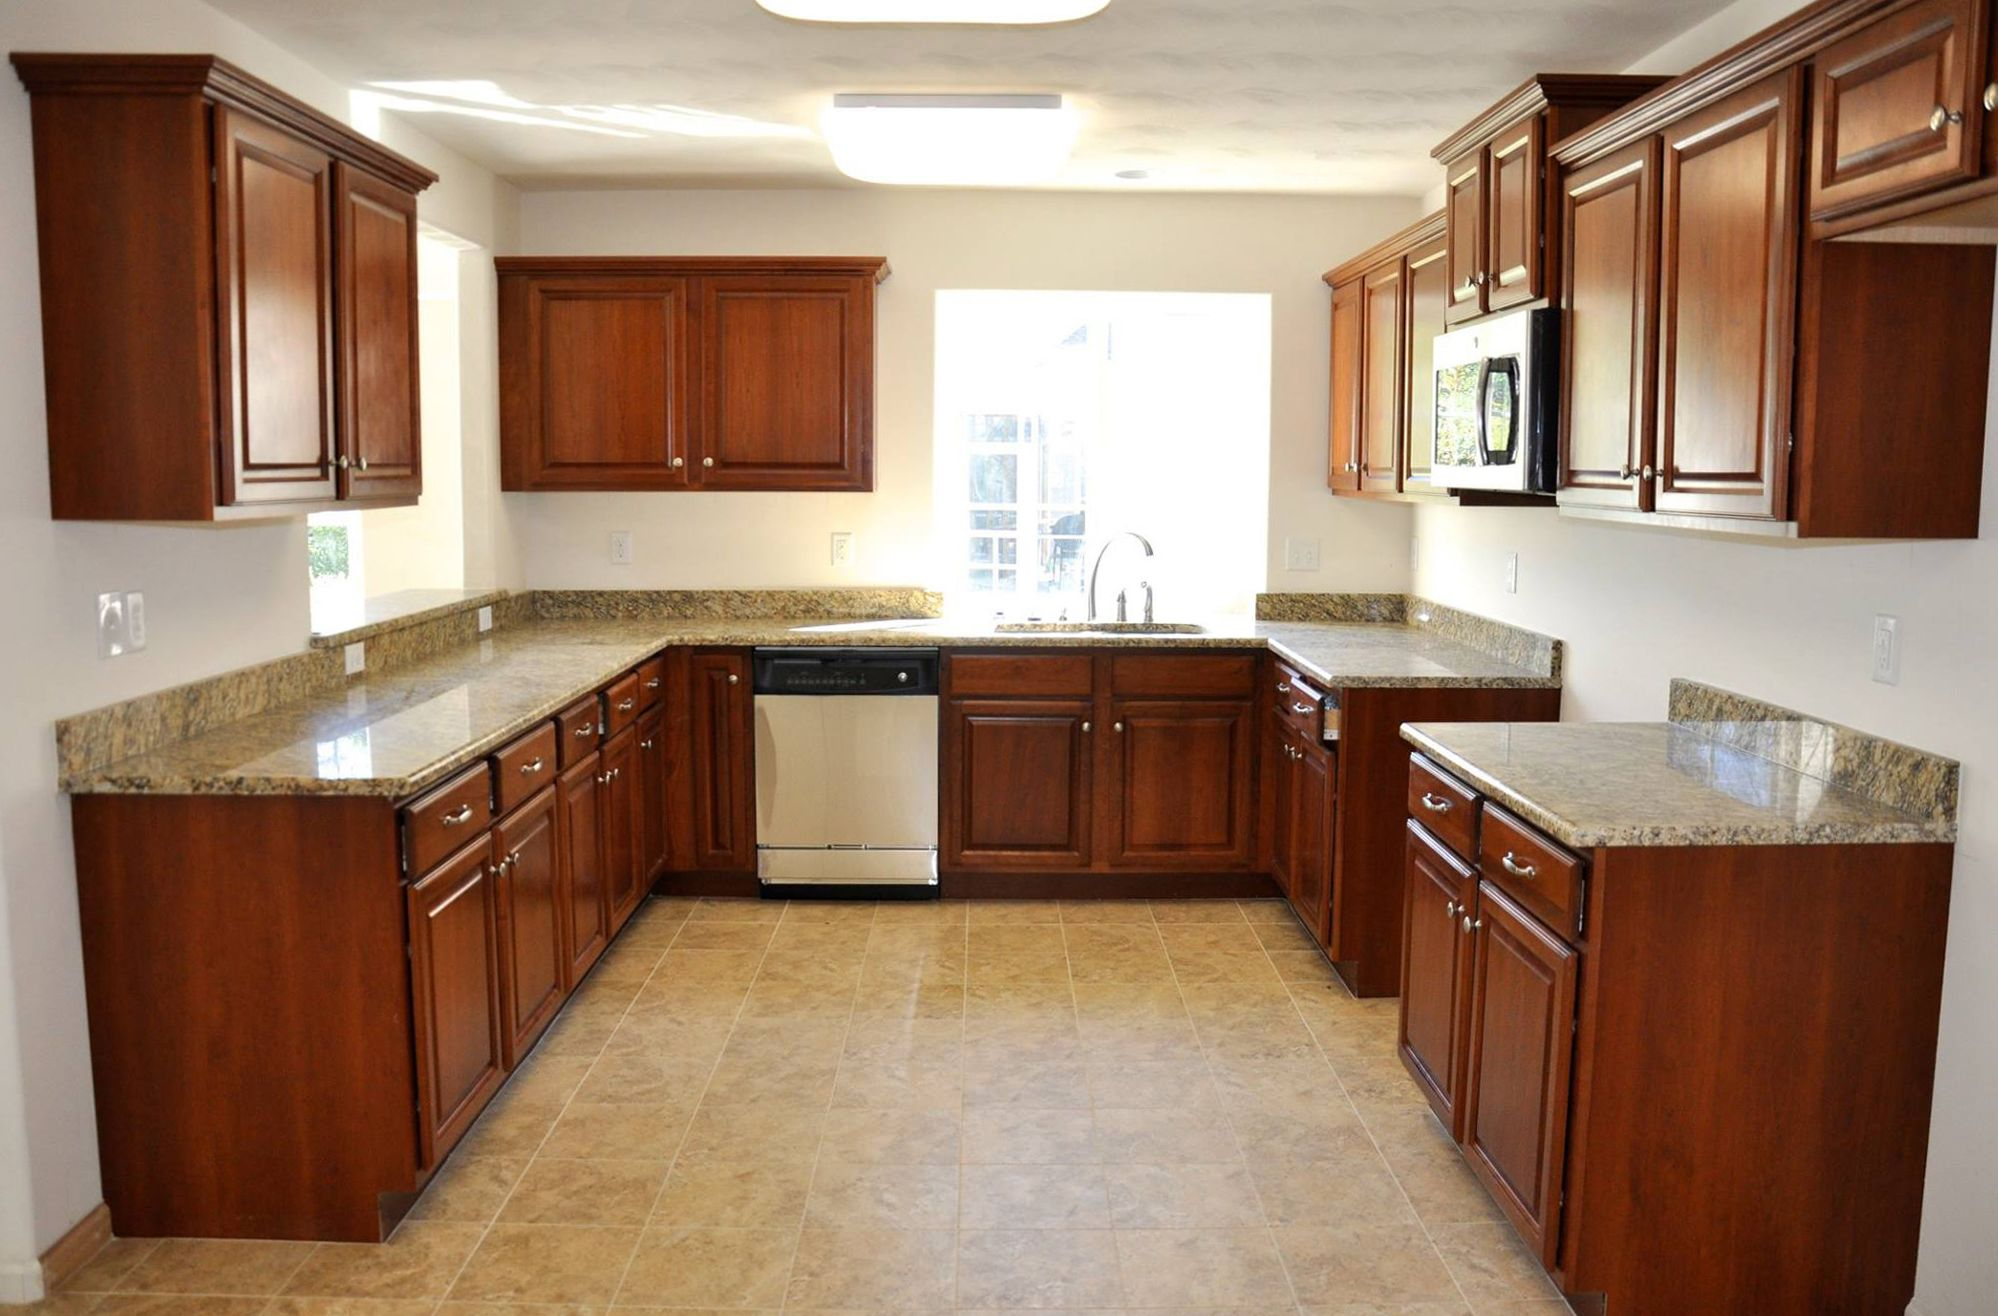 Plenty of room in this kitchen portico model 4 bedrooms 2 5 baths